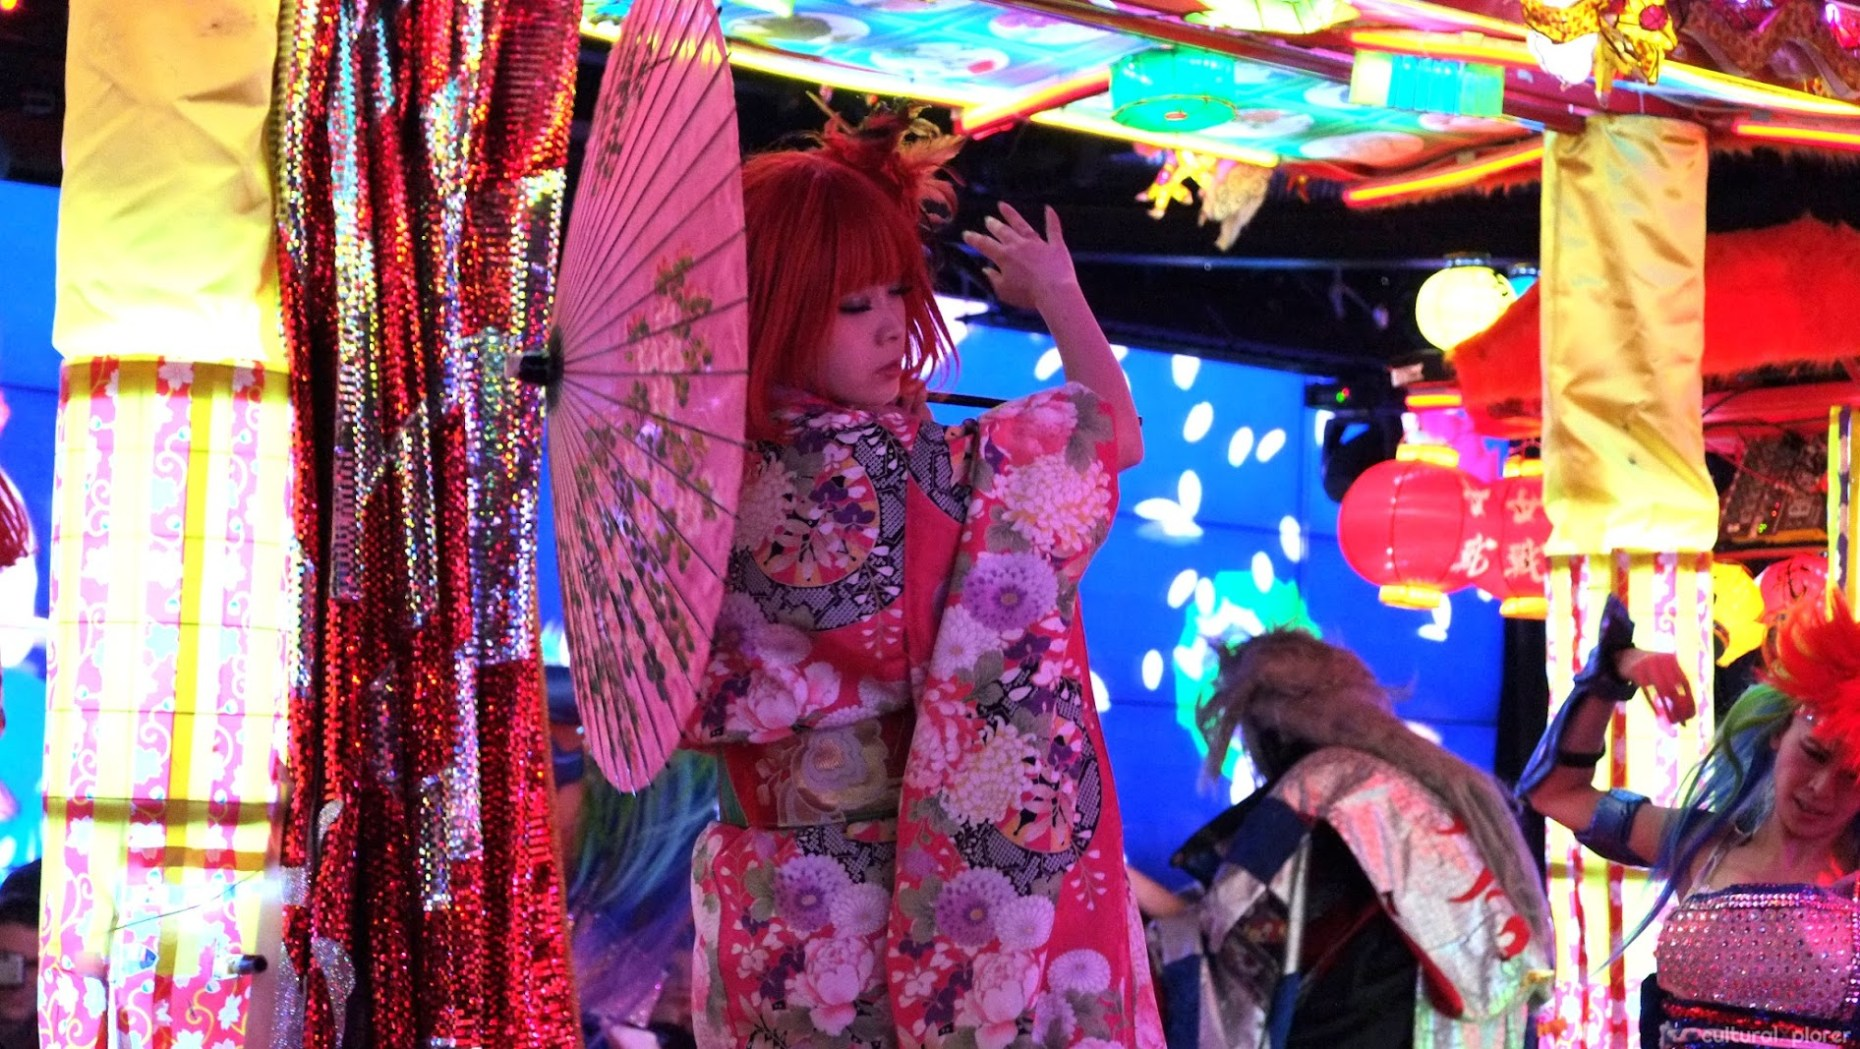 Japanese woman Robot Restaurant